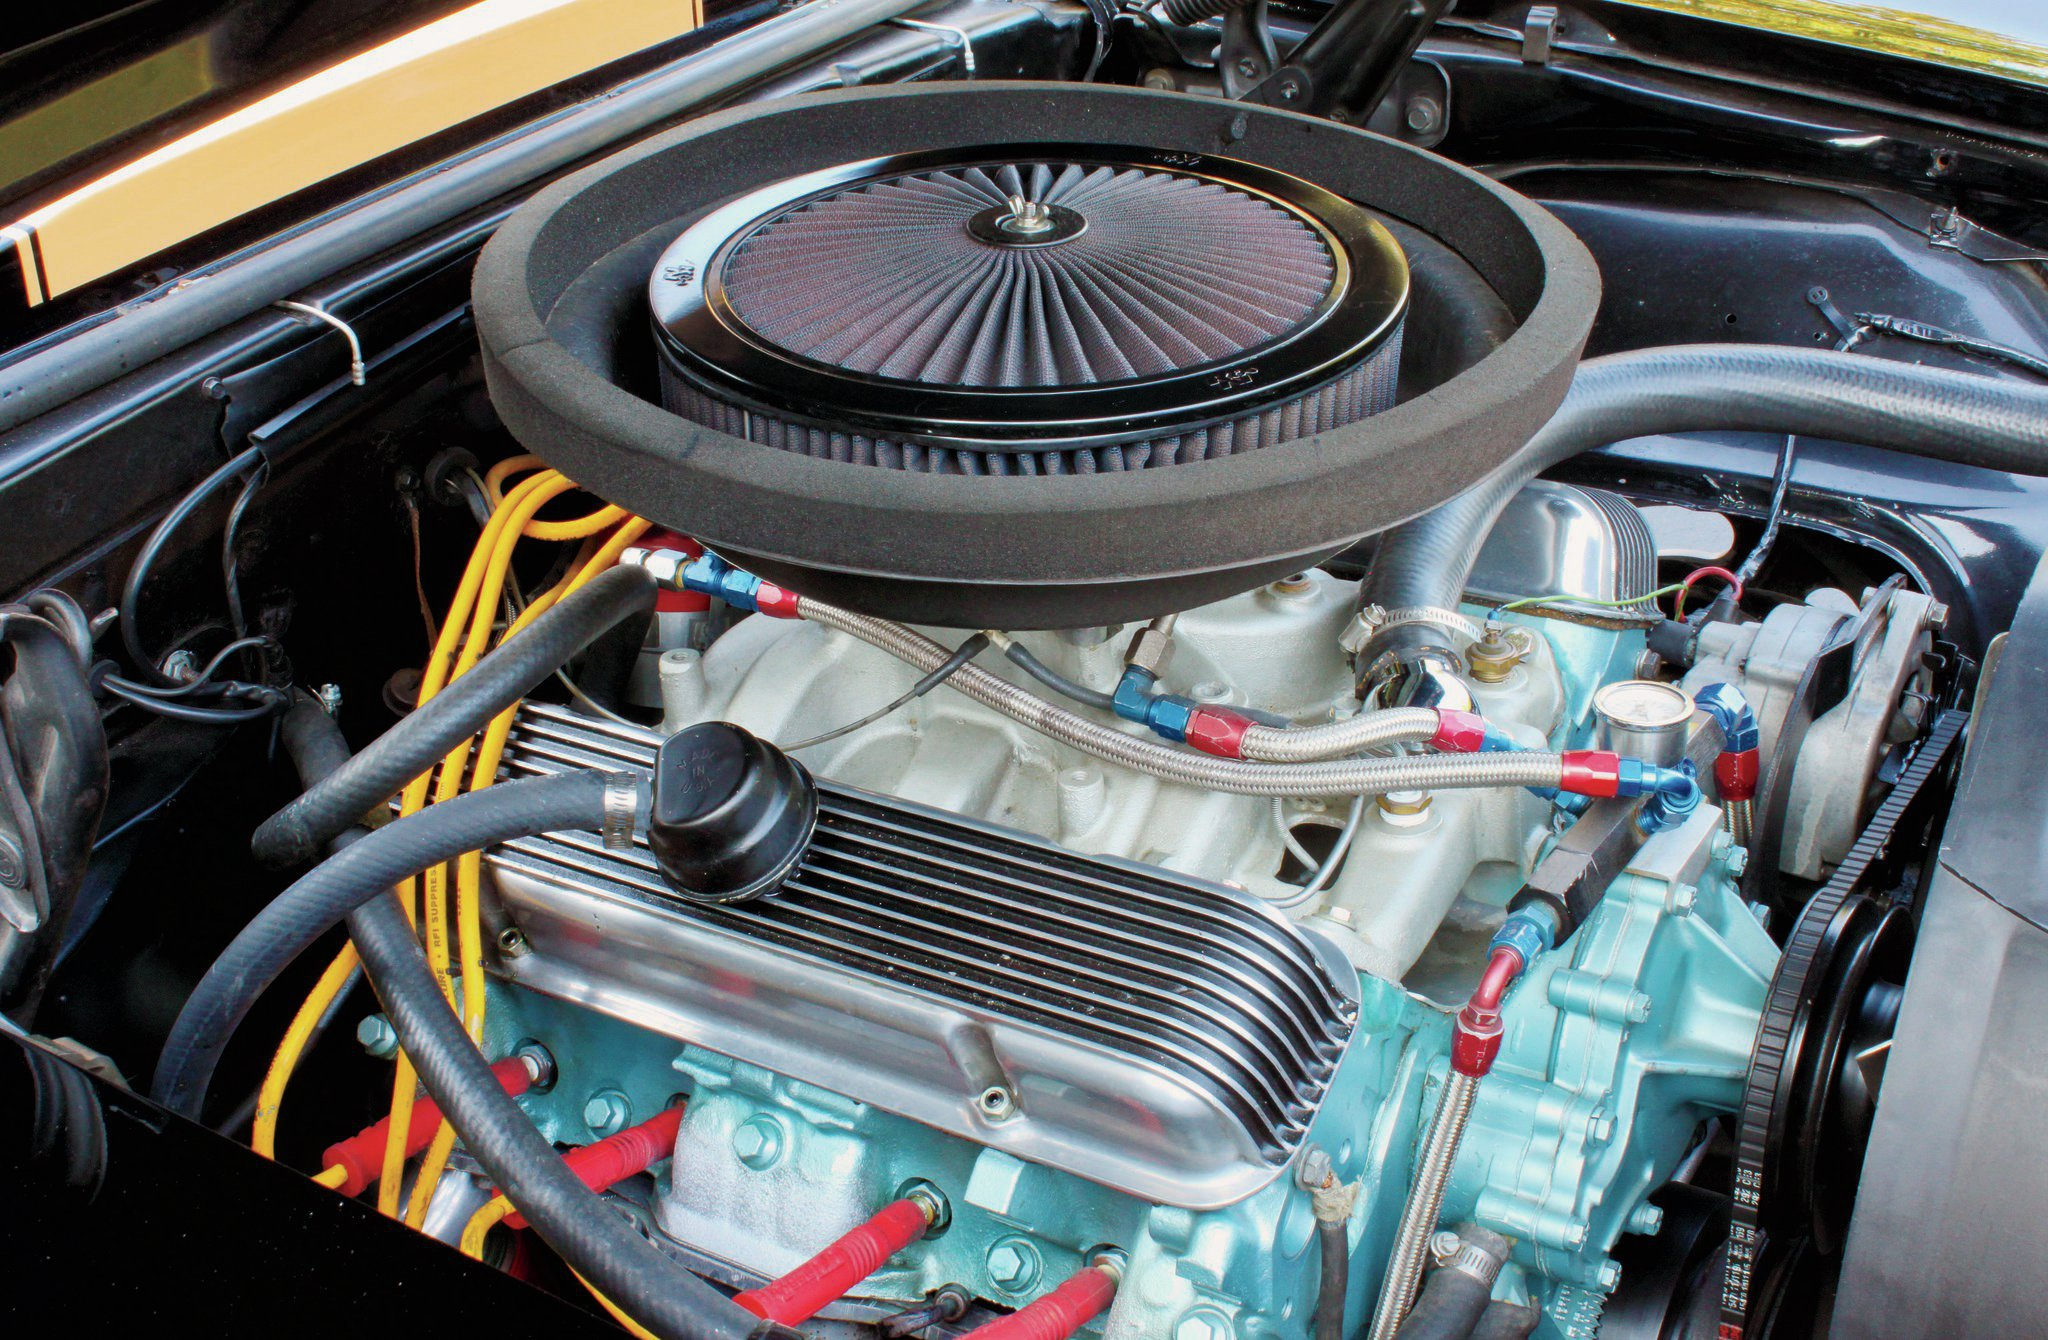 Said to be a favorite combo of Jim Wangers, the 440ci Pontiac mill in the Blackbird was created with the marriage of a 428 crankshaft and a 455 block bored 0.030 over. It's an over-square design that allows the engine to rev quickly while still producing excellent torque.